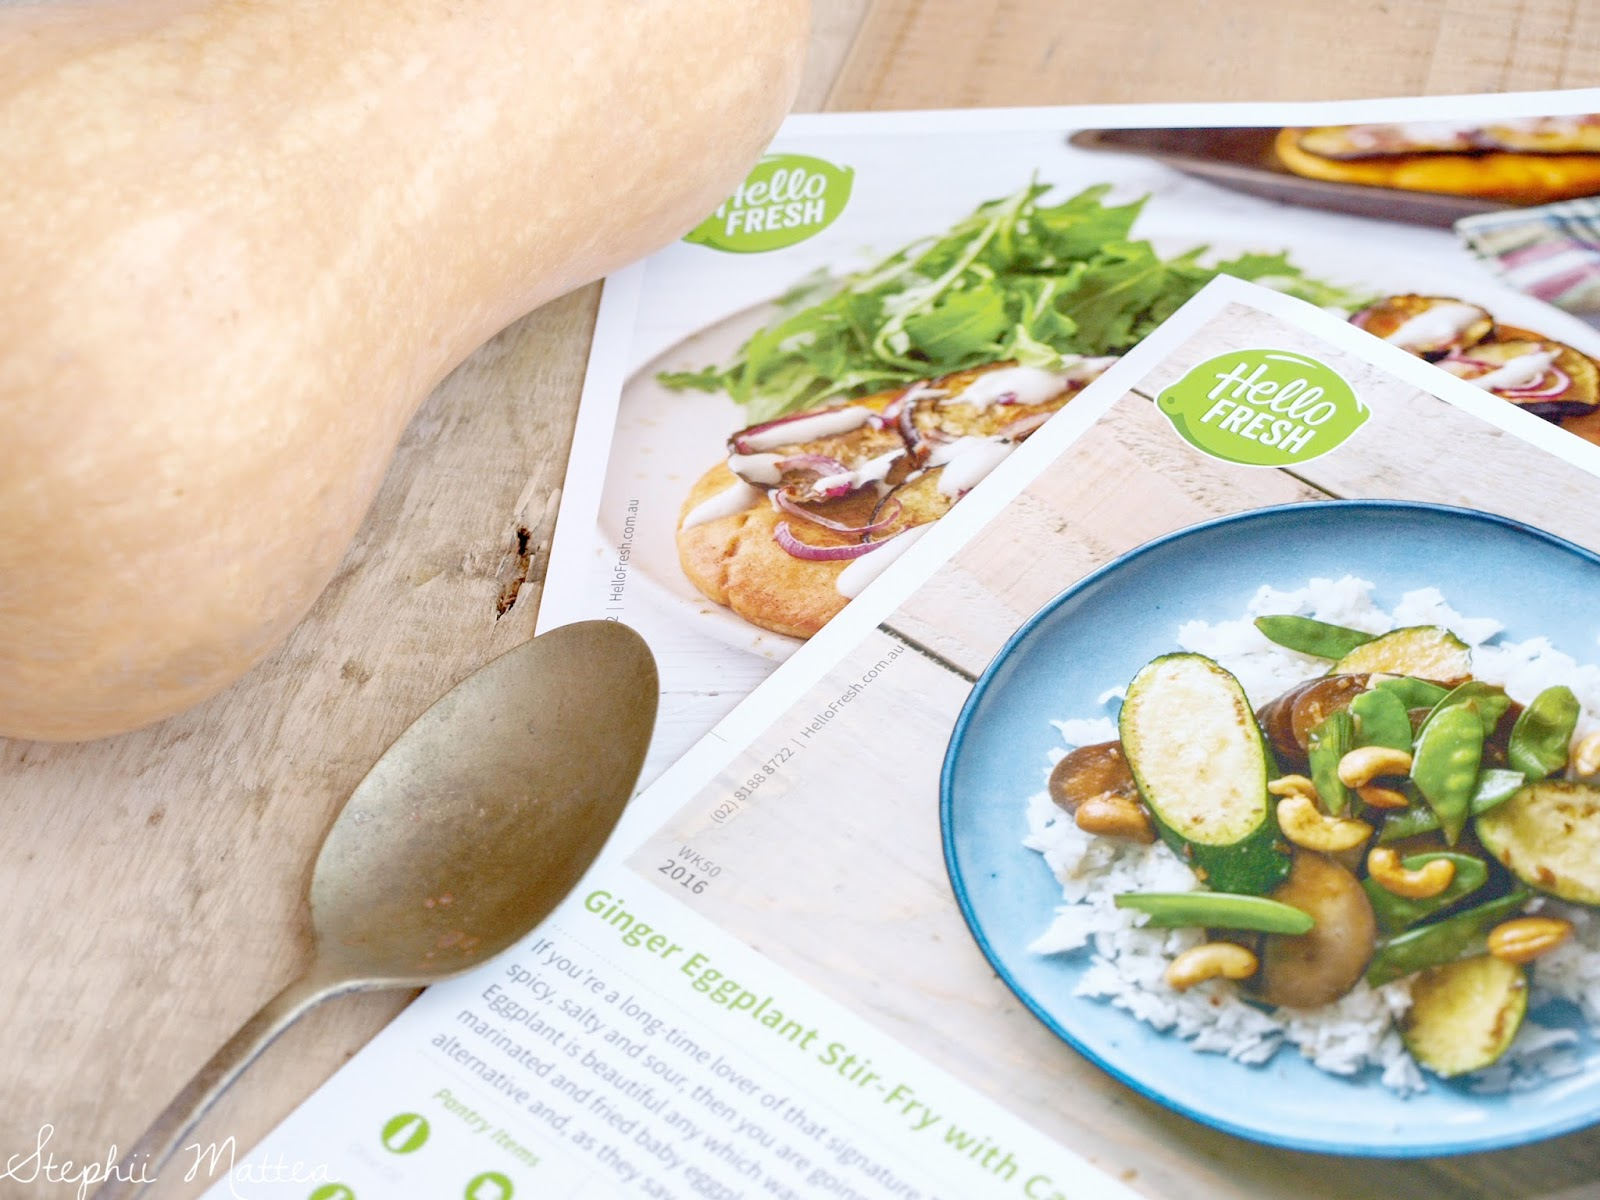 Meal Kit Delivery Service Hellofresh Coupon Code Lookup April 2020